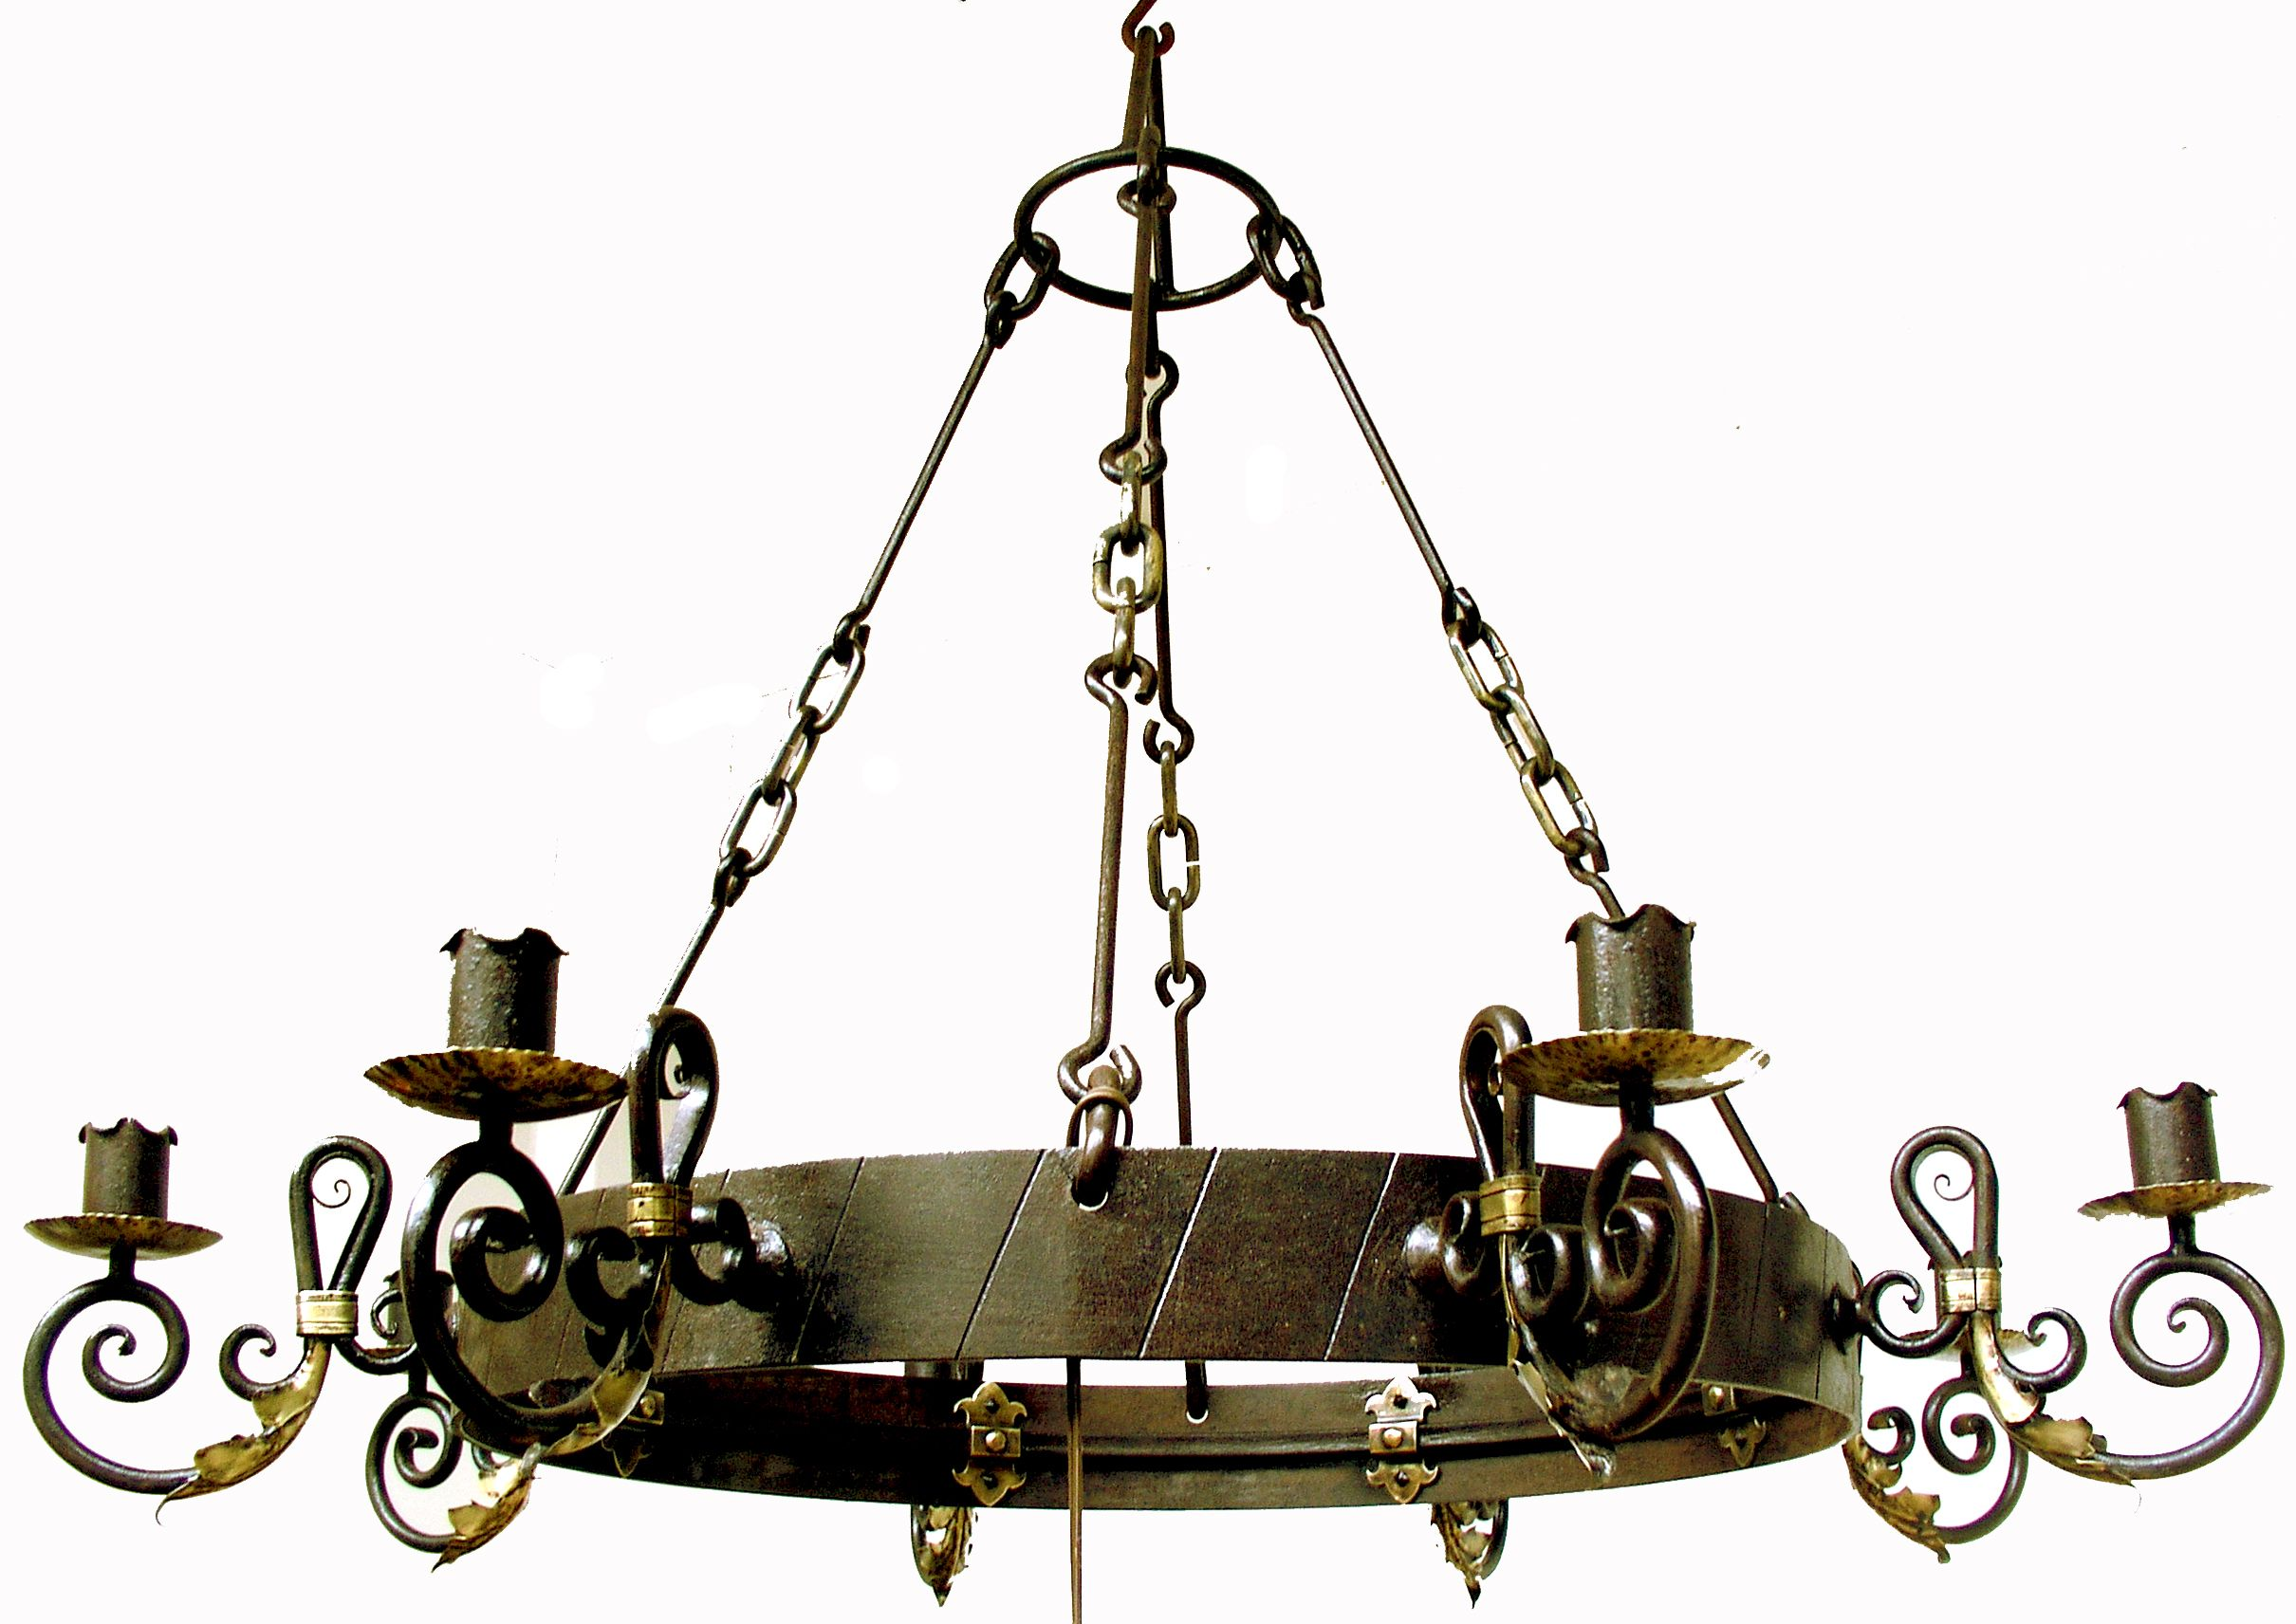 Madera 34 12 wide black iron hand forged chandelier chandeliers madera 34 12 wide black iron hand forged chandelier chandeliers forging metal and iron arubaitofo Images